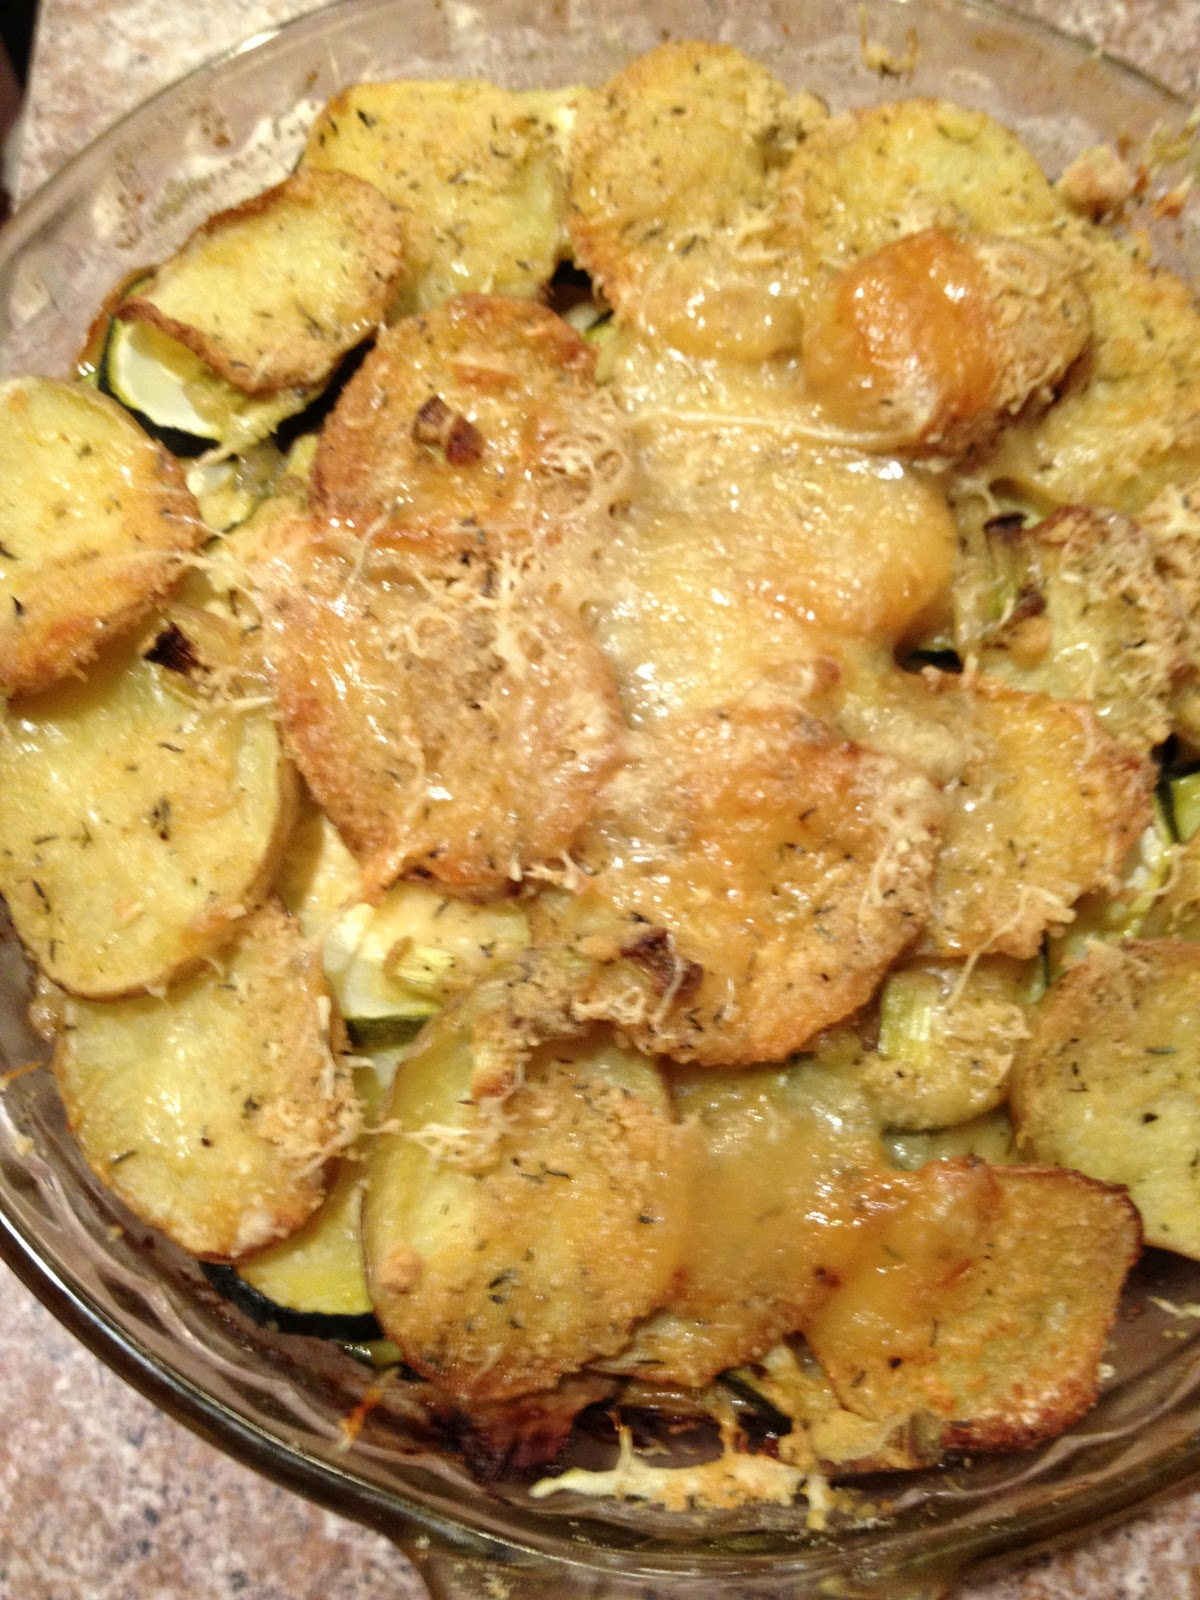 ... in Elgin, Texas: Herbed Summer Squash and Potato Torte with Parmesan